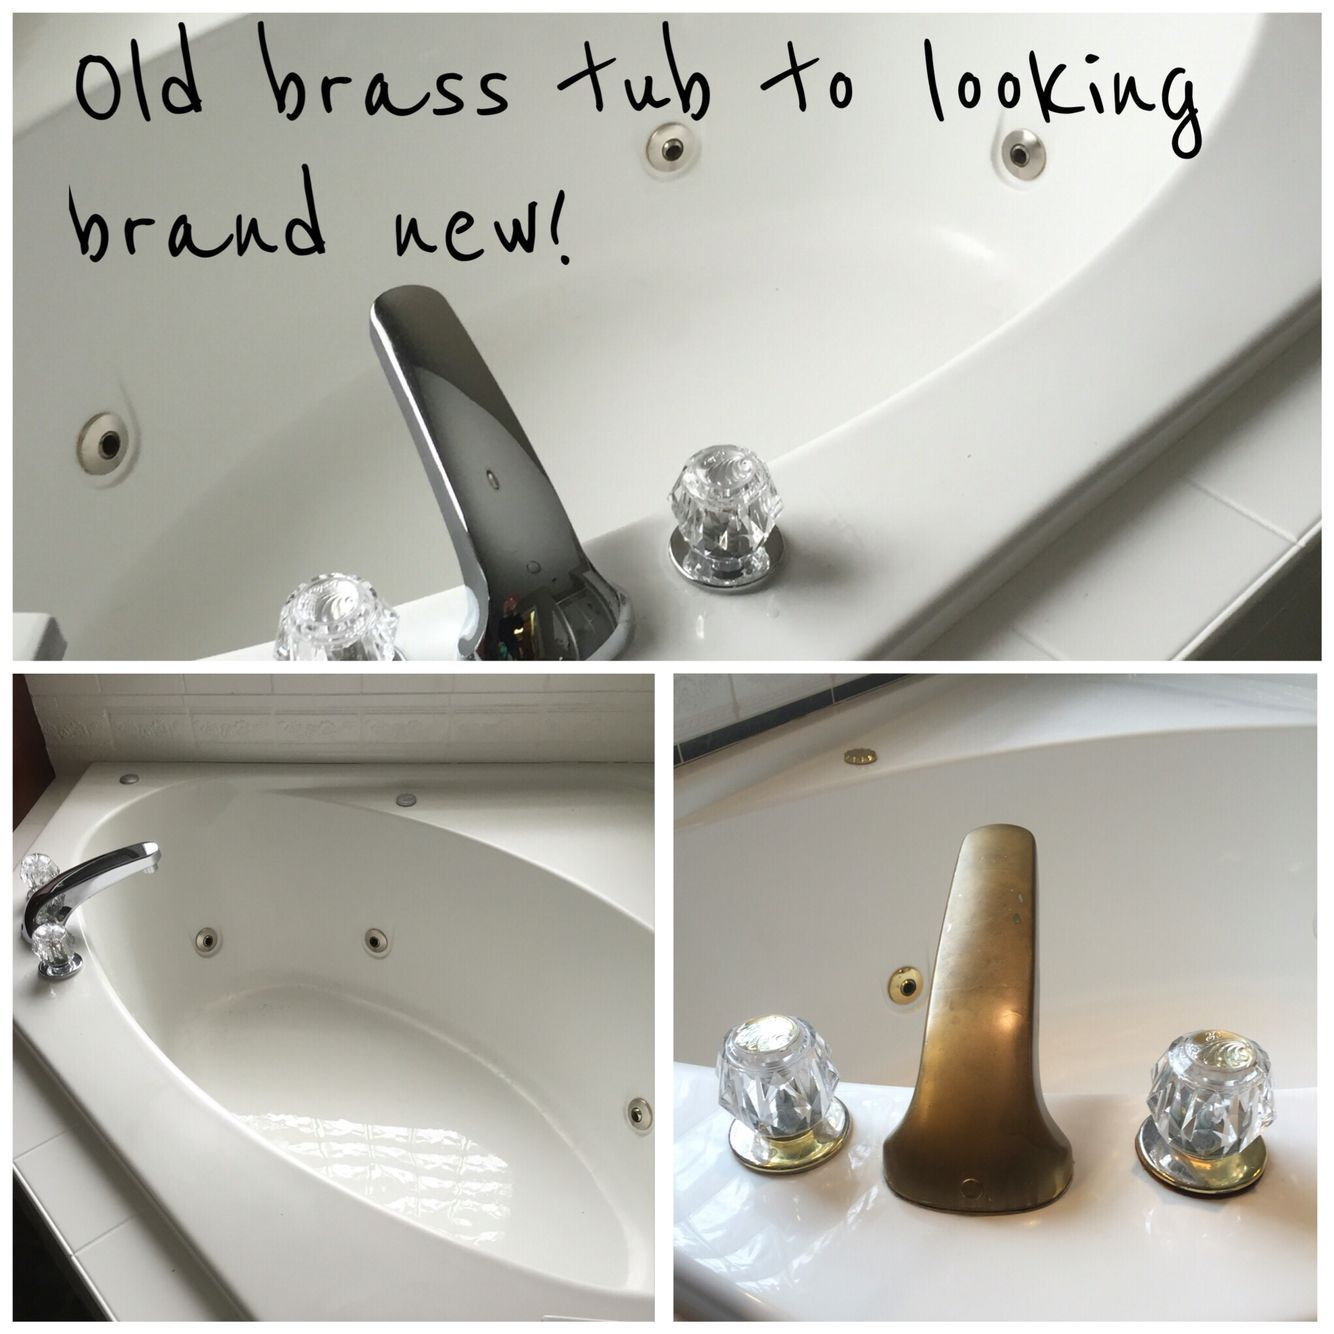 Get A Brand New Tub With A Little Elbow Grease And New Faucet I